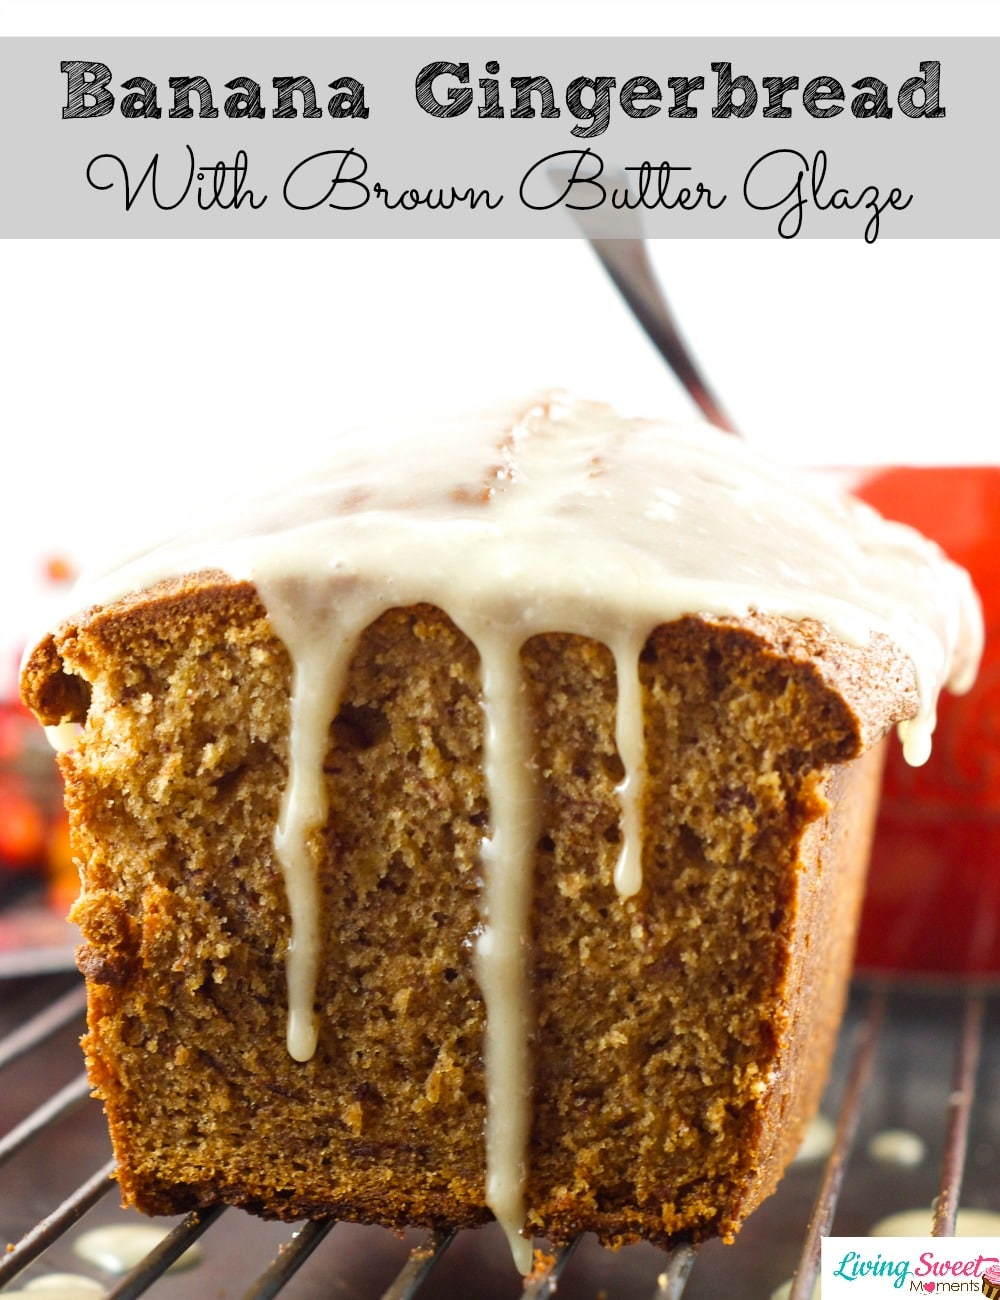 banana-gingerbread-with-brown-butter-glaze-cover